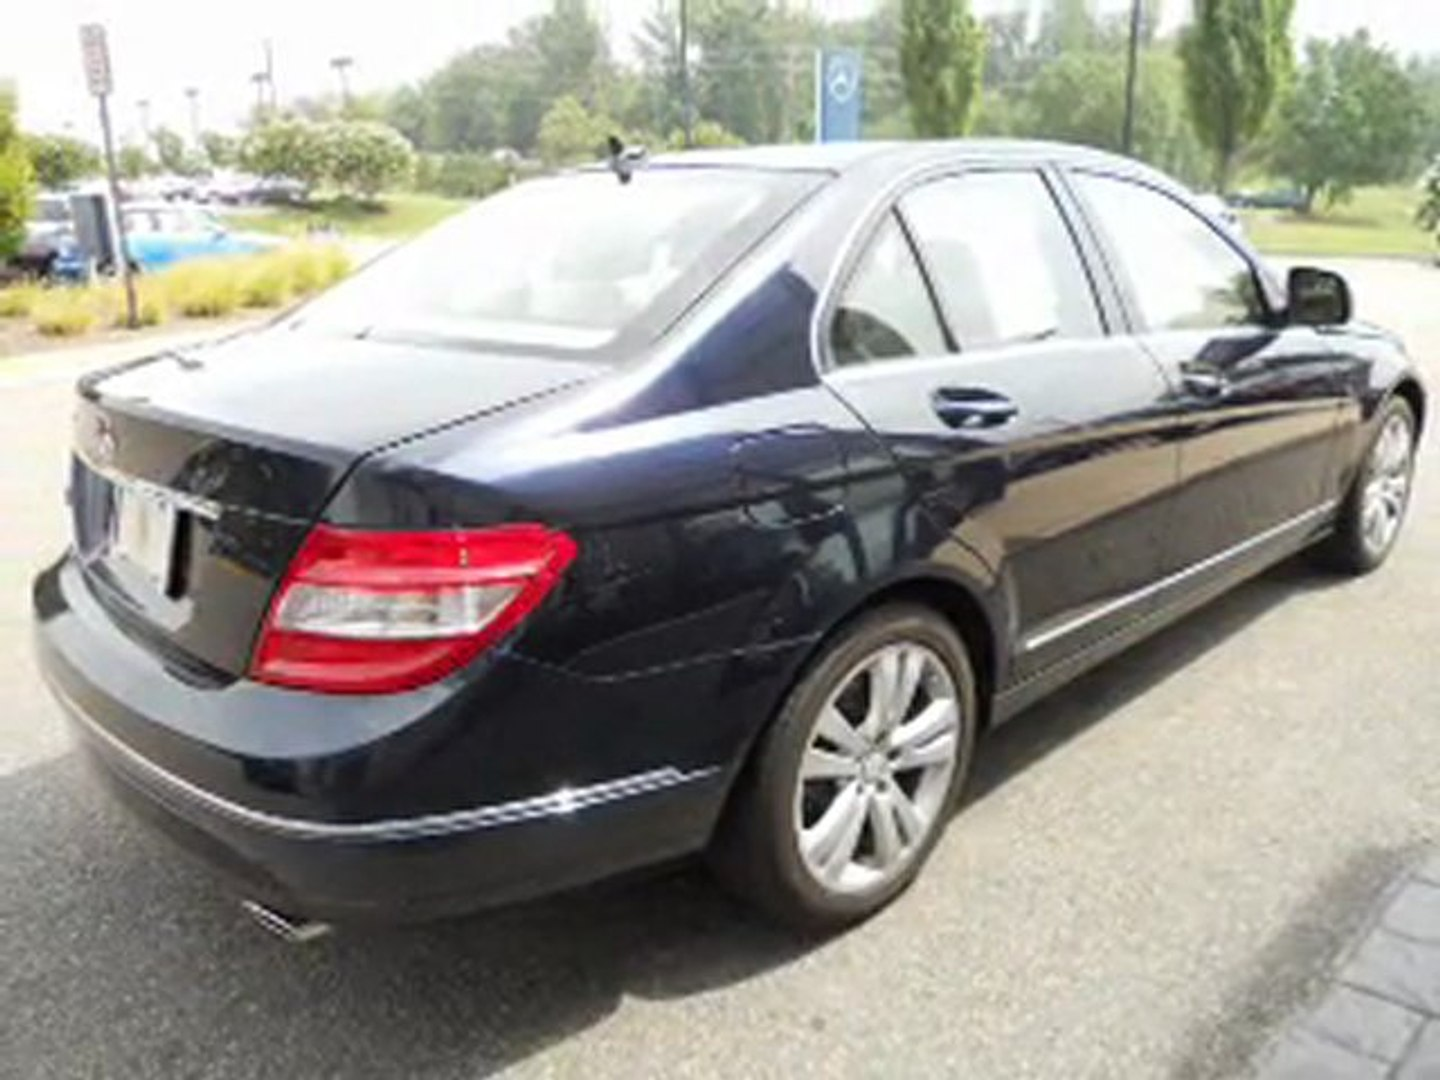 2008 Mercedes-Benz C-Class for sale in Midlothian VA - Certified Used Mercedes-Benz by EveryCarListe